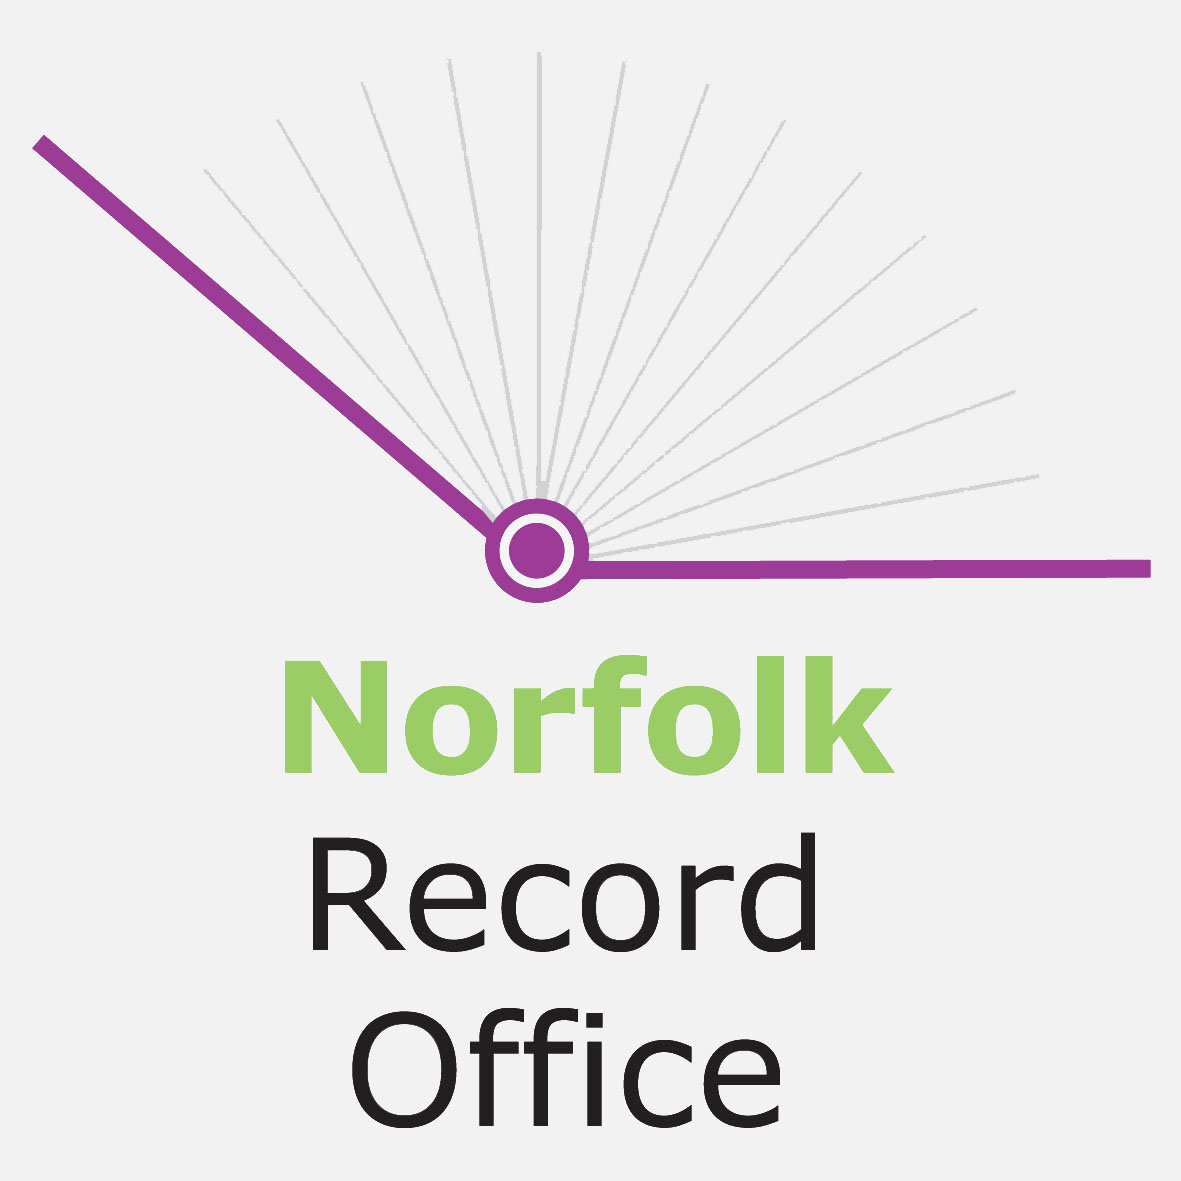 Norfolk Record Office, Norfolk text in bold green, purple open book graphic above text